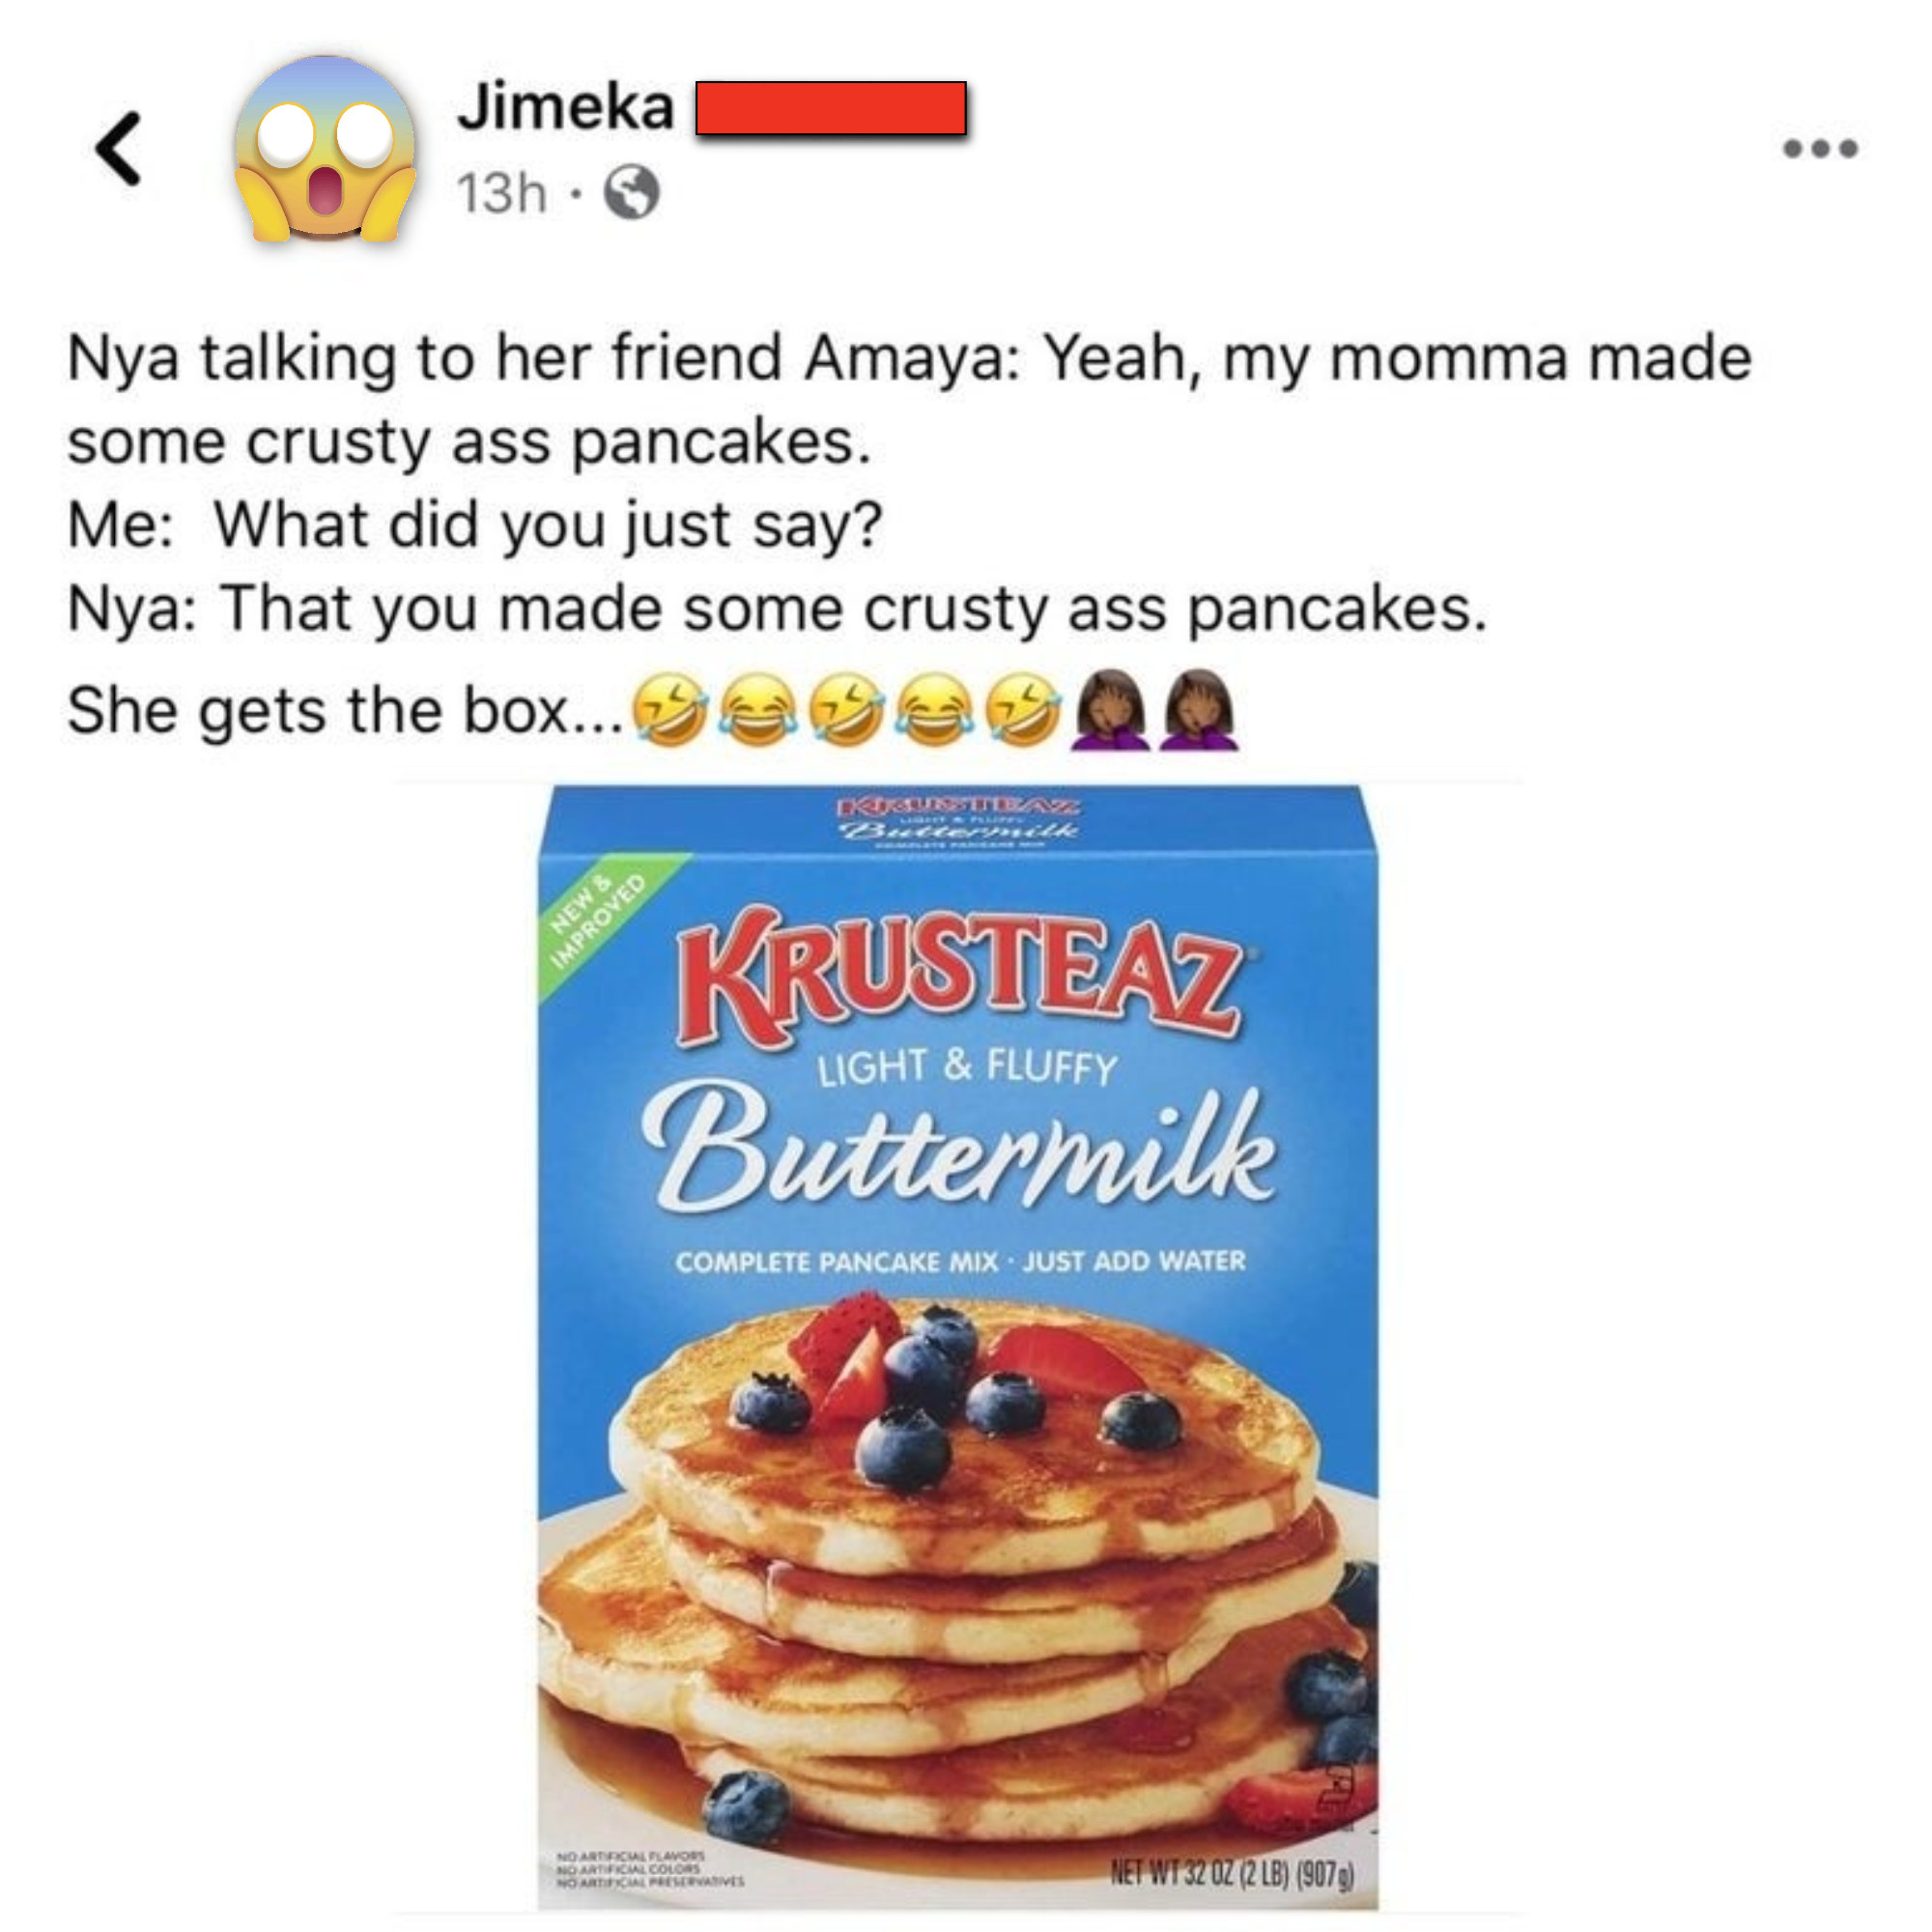 facebook post of someone saying their kid said they made crusty ass pancakes and it turns out they mean krusteaz pancakes